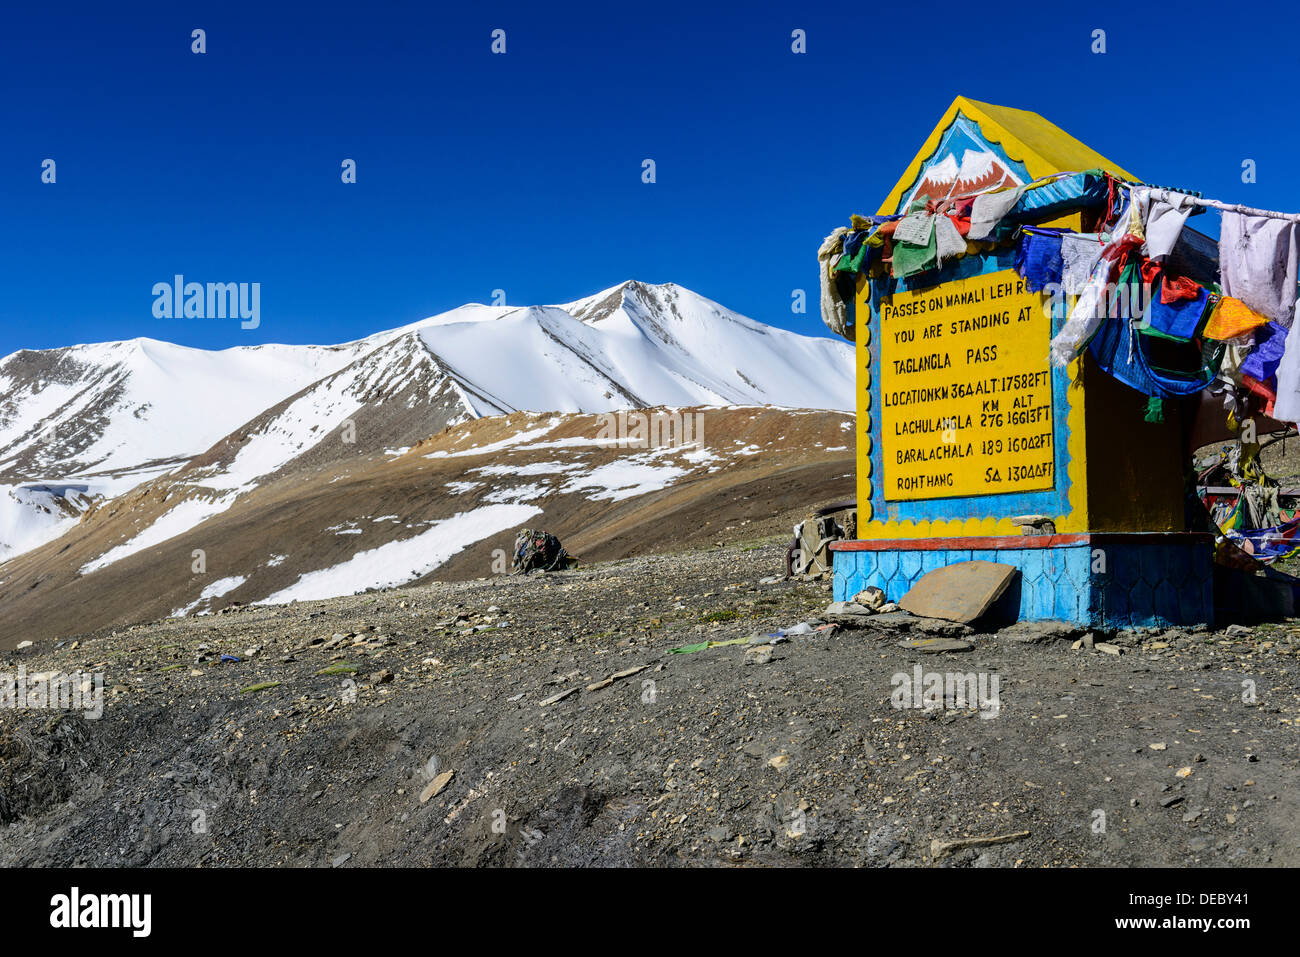 The milestone on top of Taglang La, 5.325 m, the highest pass on the Manali-Leh Highway, snow covered mountains in the distance - Stock Image